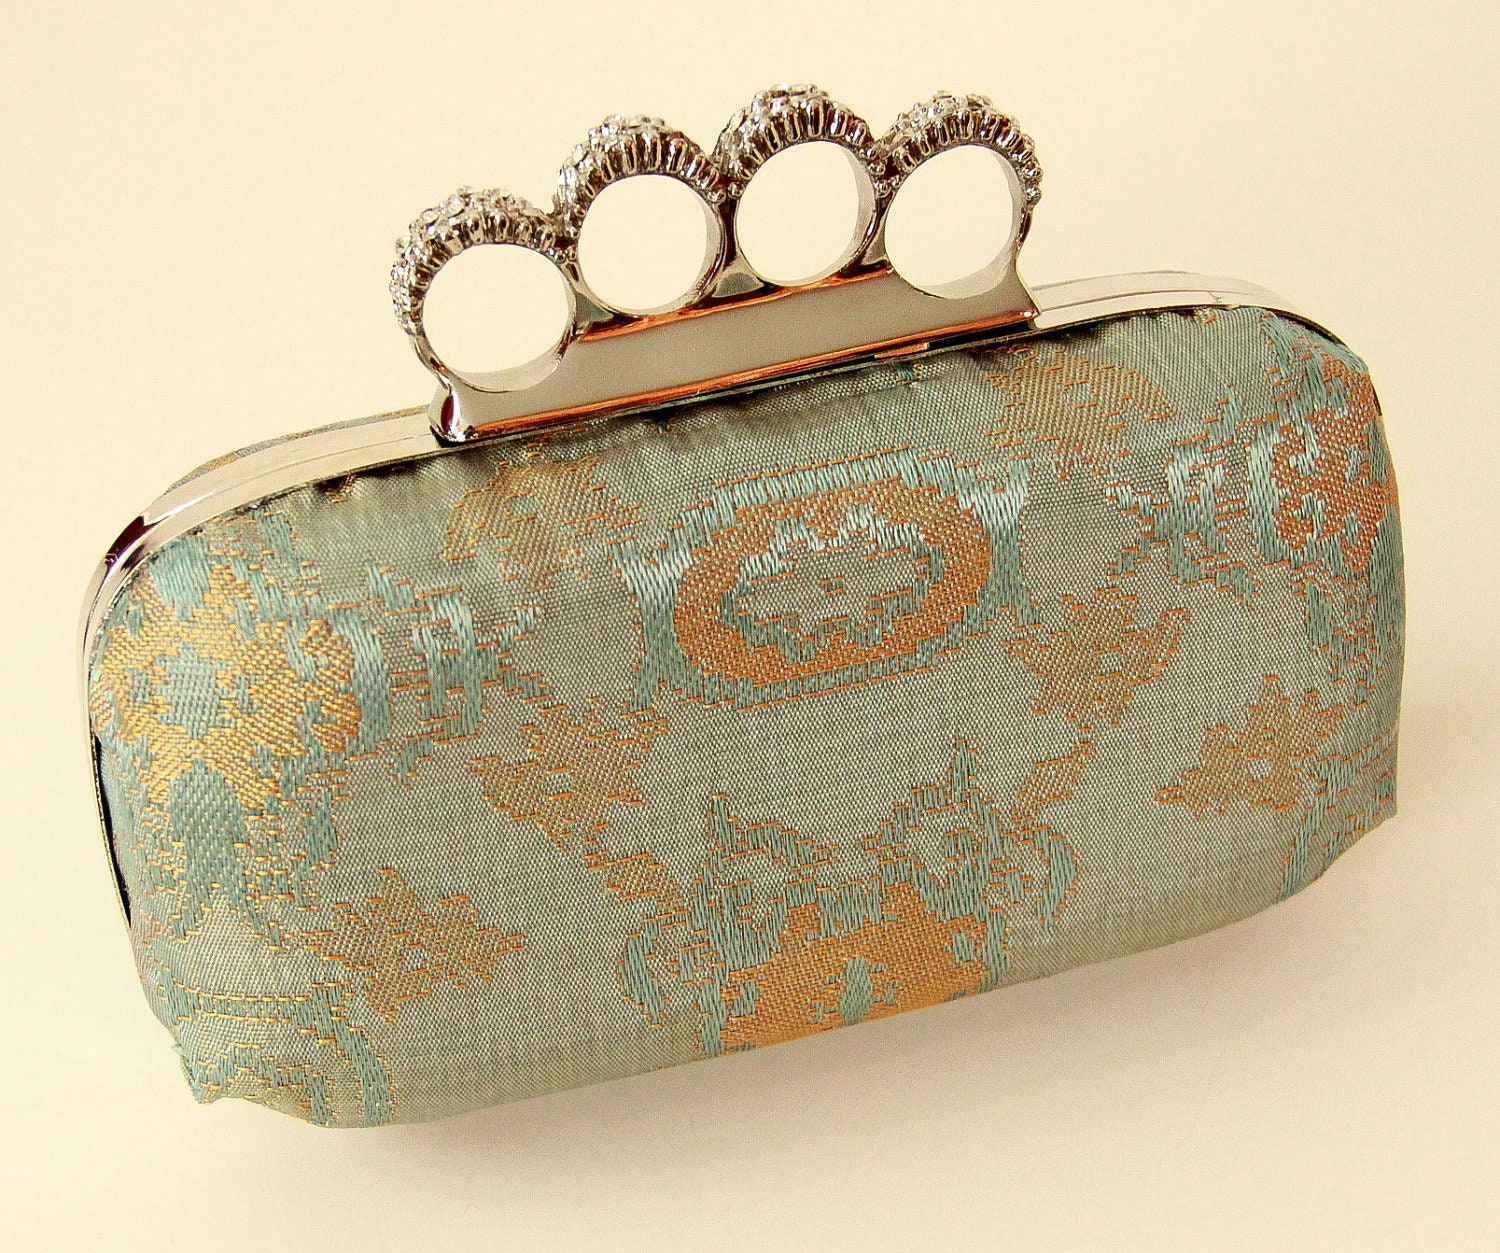 Vintage Aqua Brocade Fabric 4-Finger Clamshell Clutch Audiere